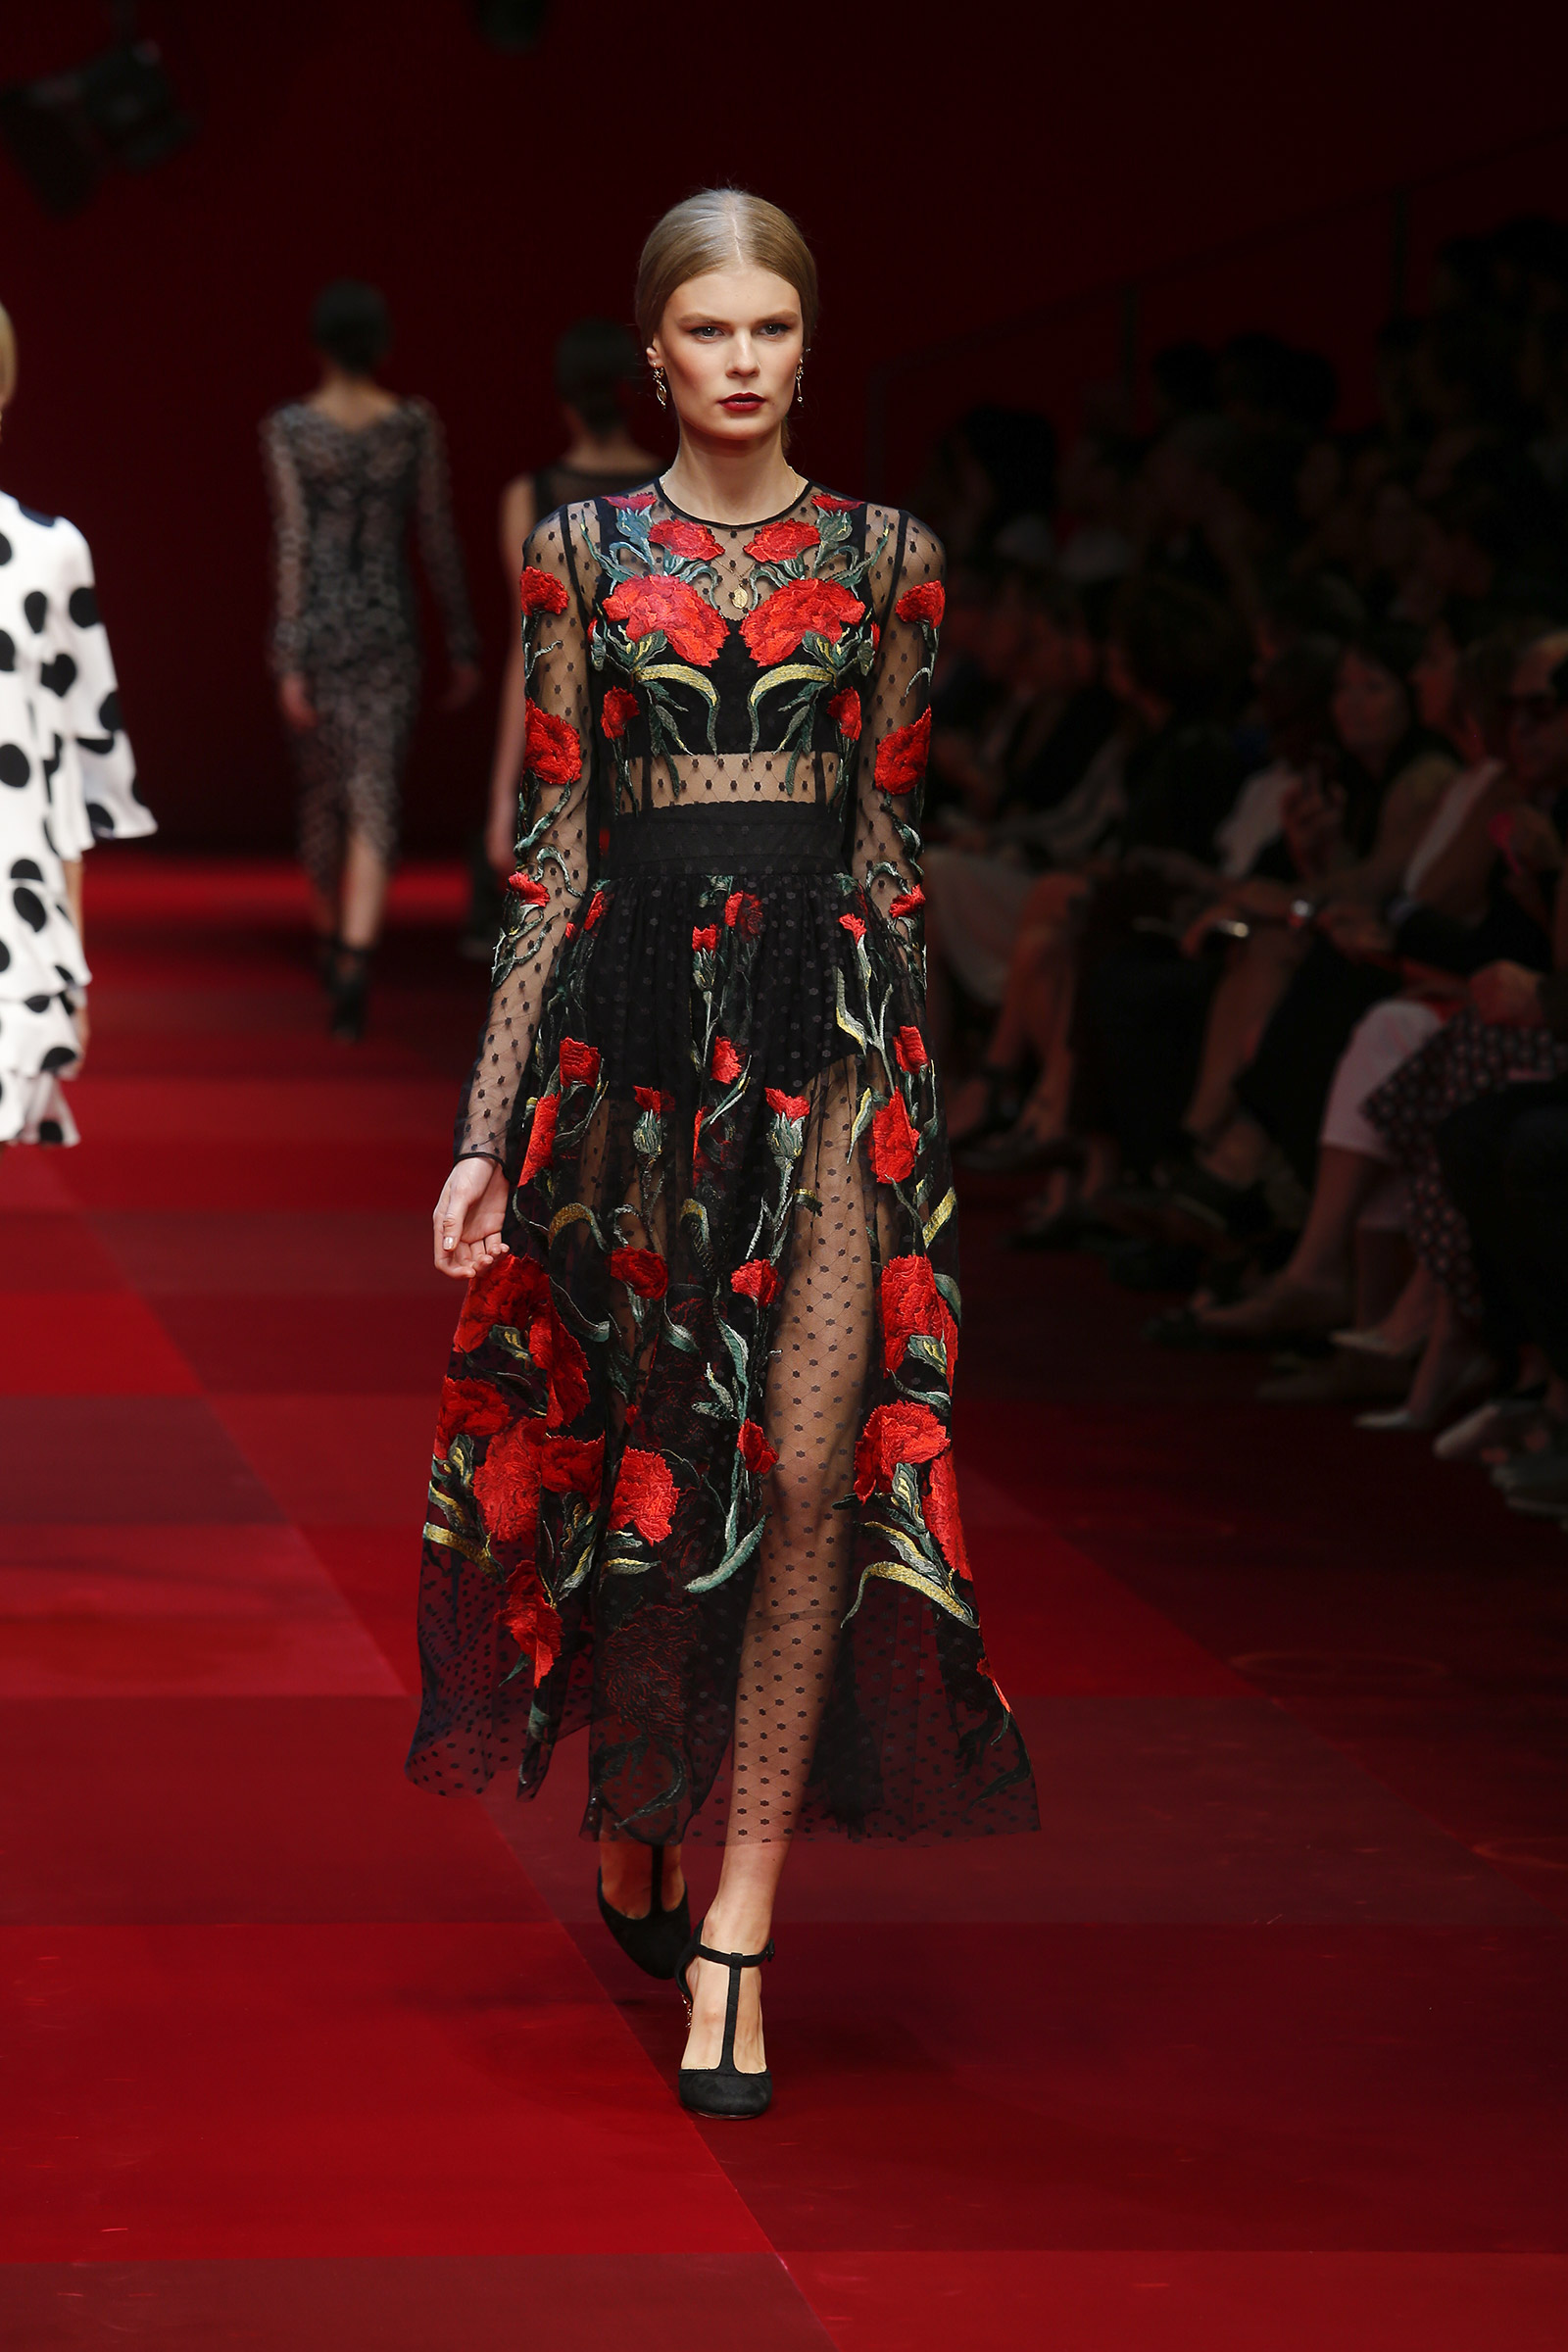 dolce-and-gabbana-summer-2015-women-fashion-show-runway-072